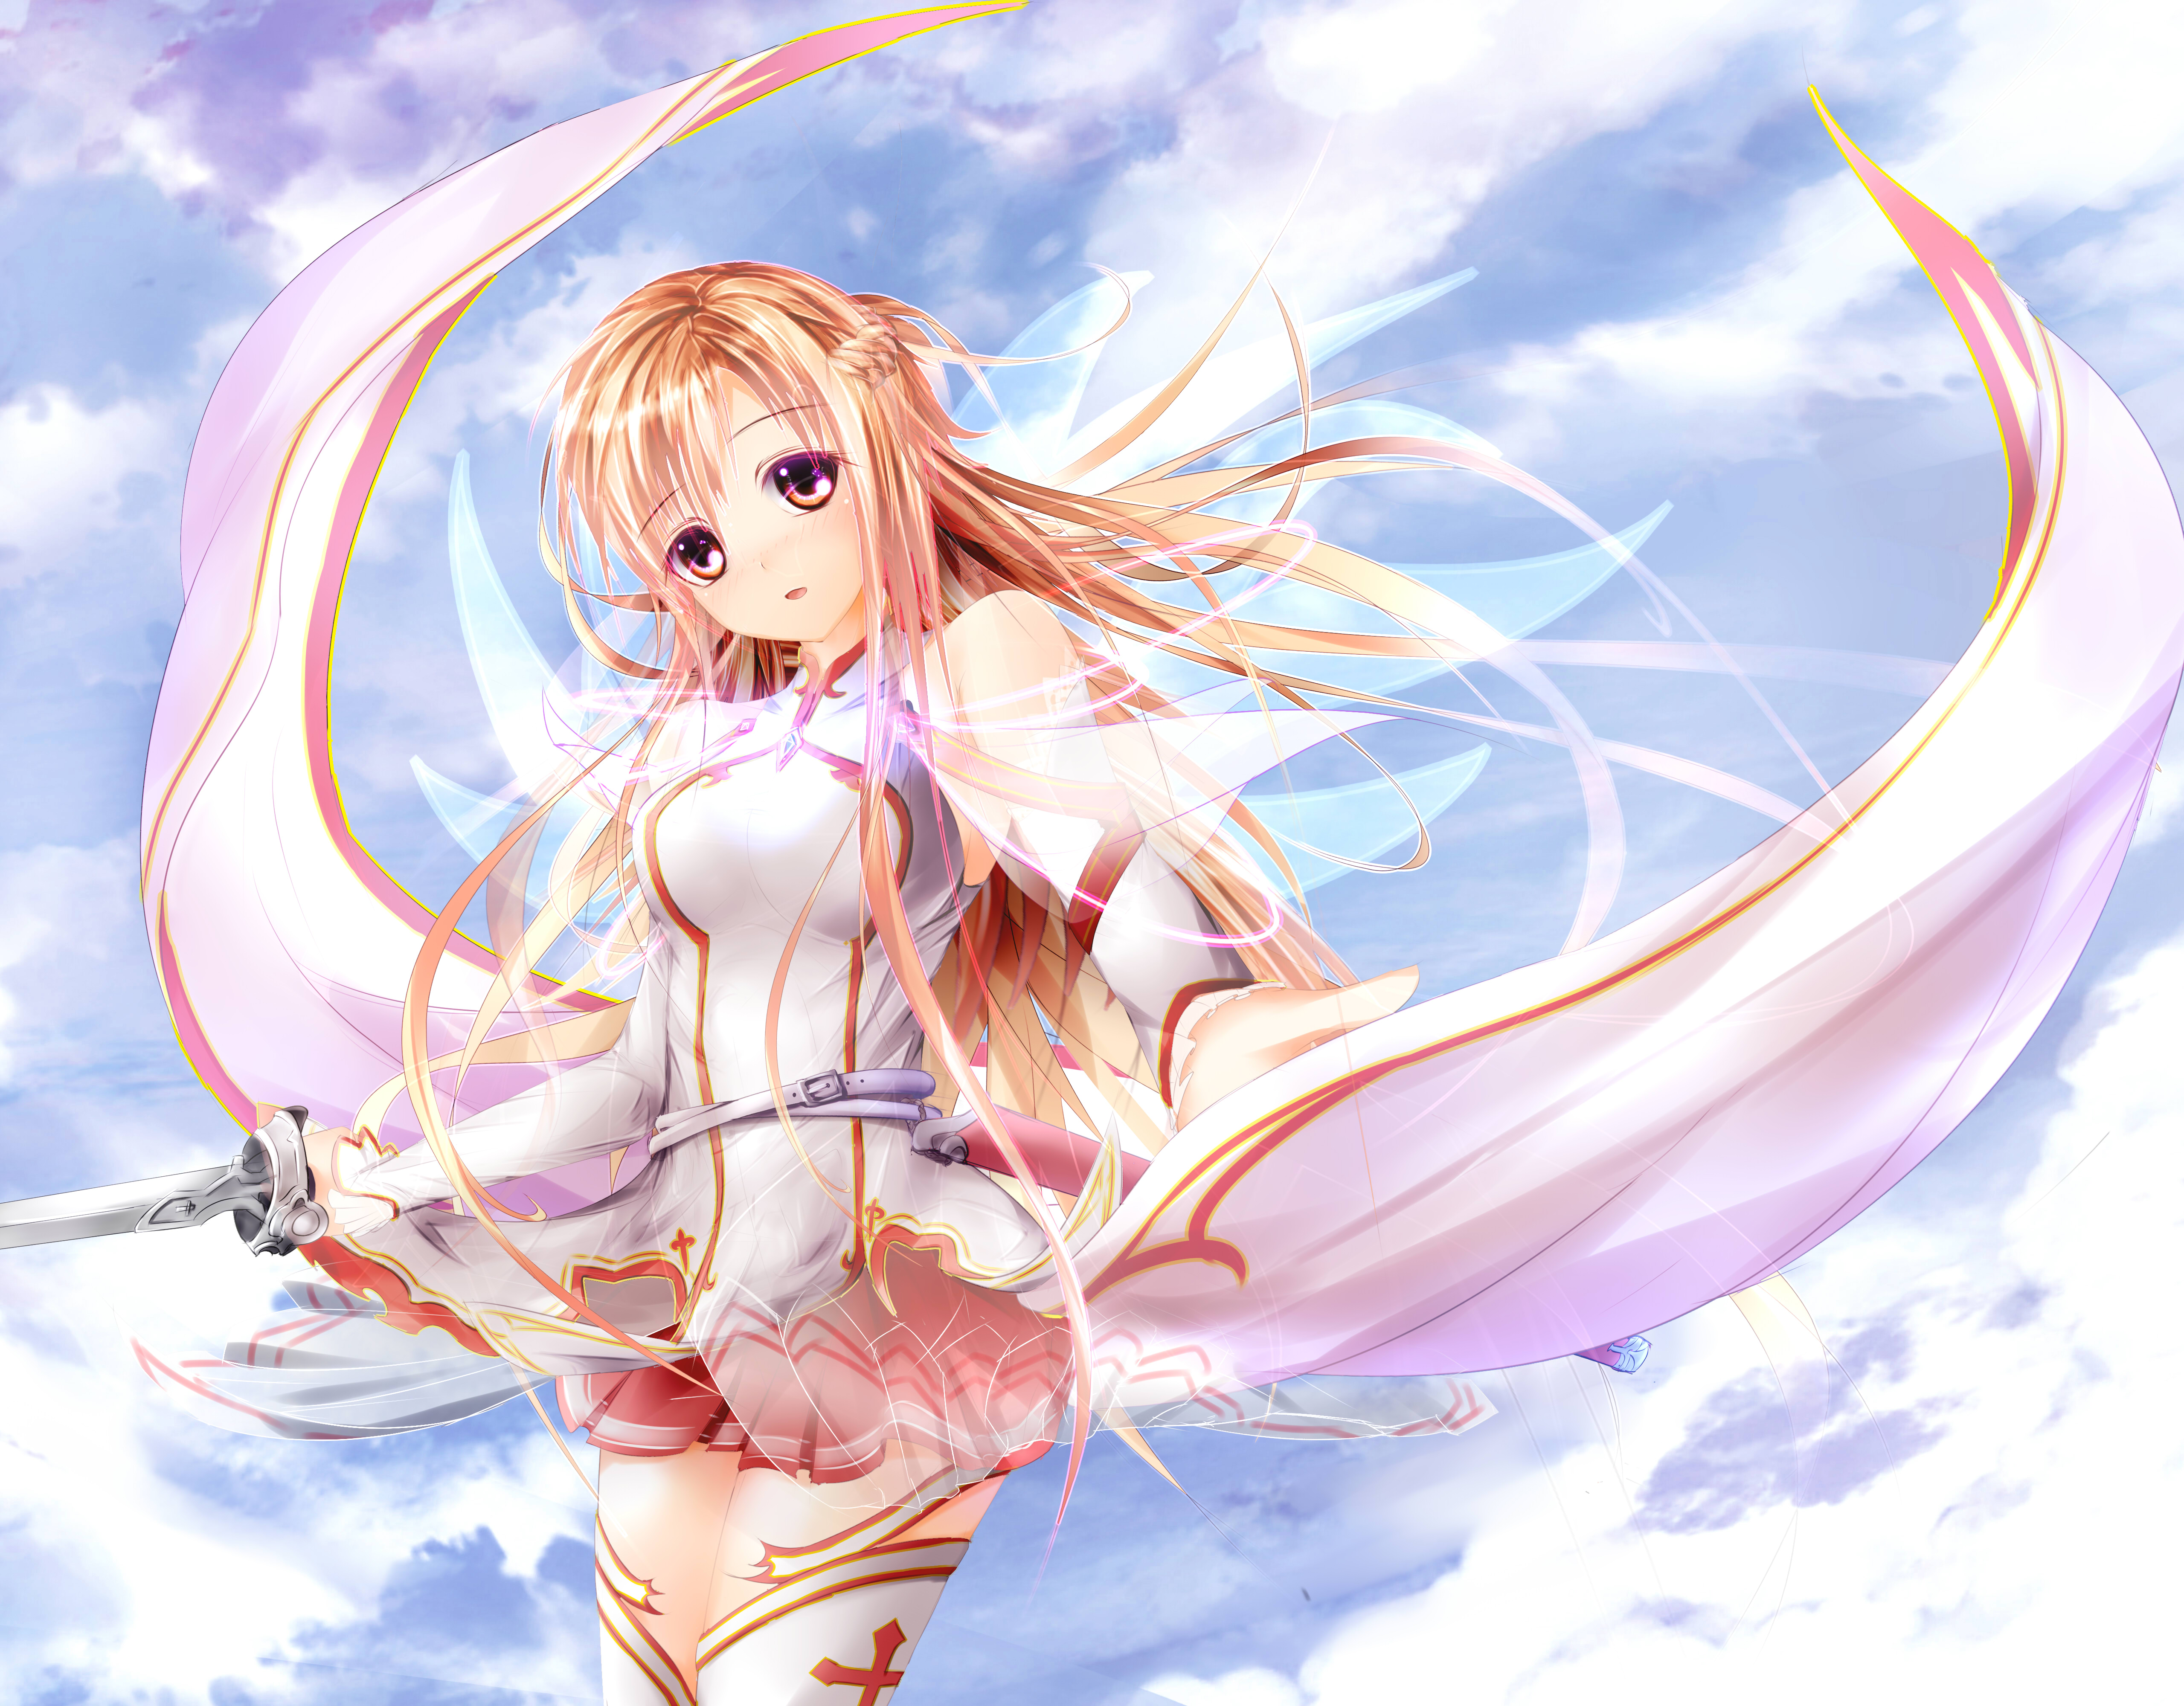 Anime Cloud Sword Art Online Sky Sword Sword Art Online